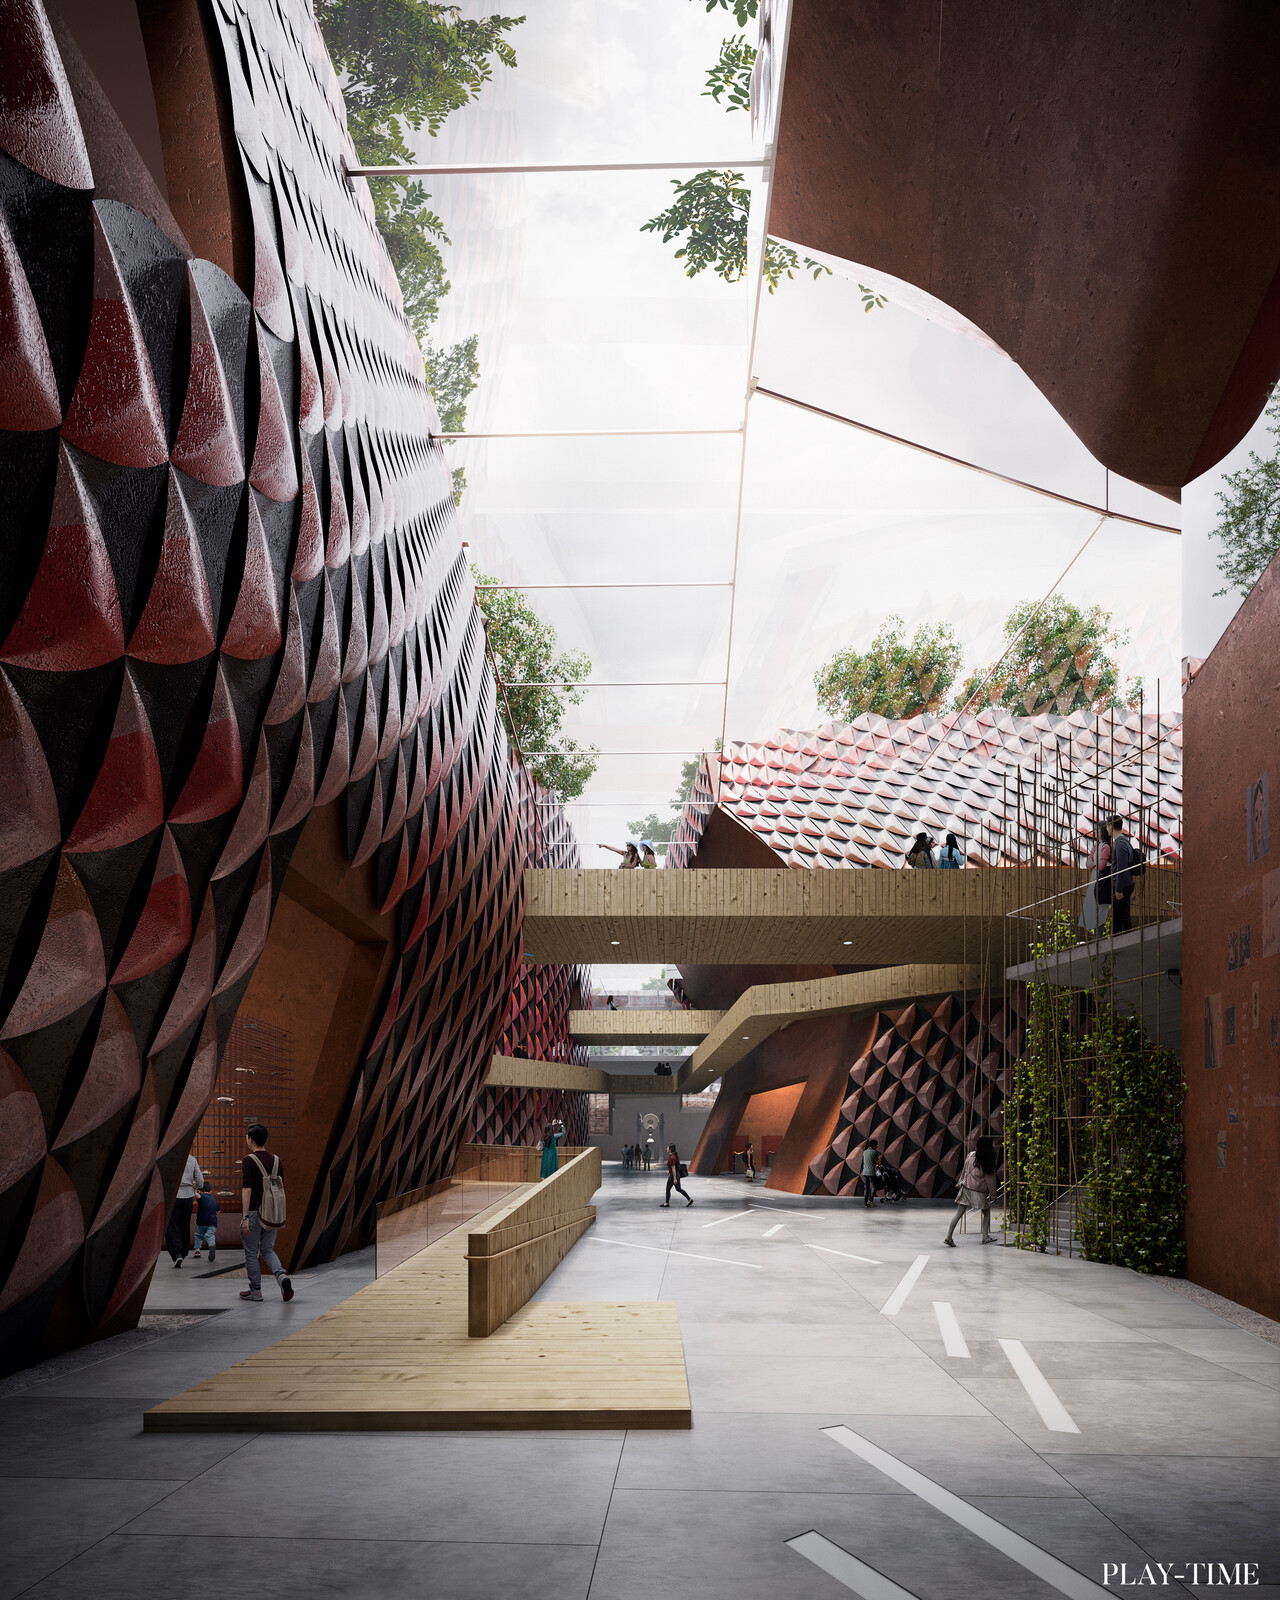 New Luxian Archeology Museum designed by EMBT. Image by PLAY-TIME